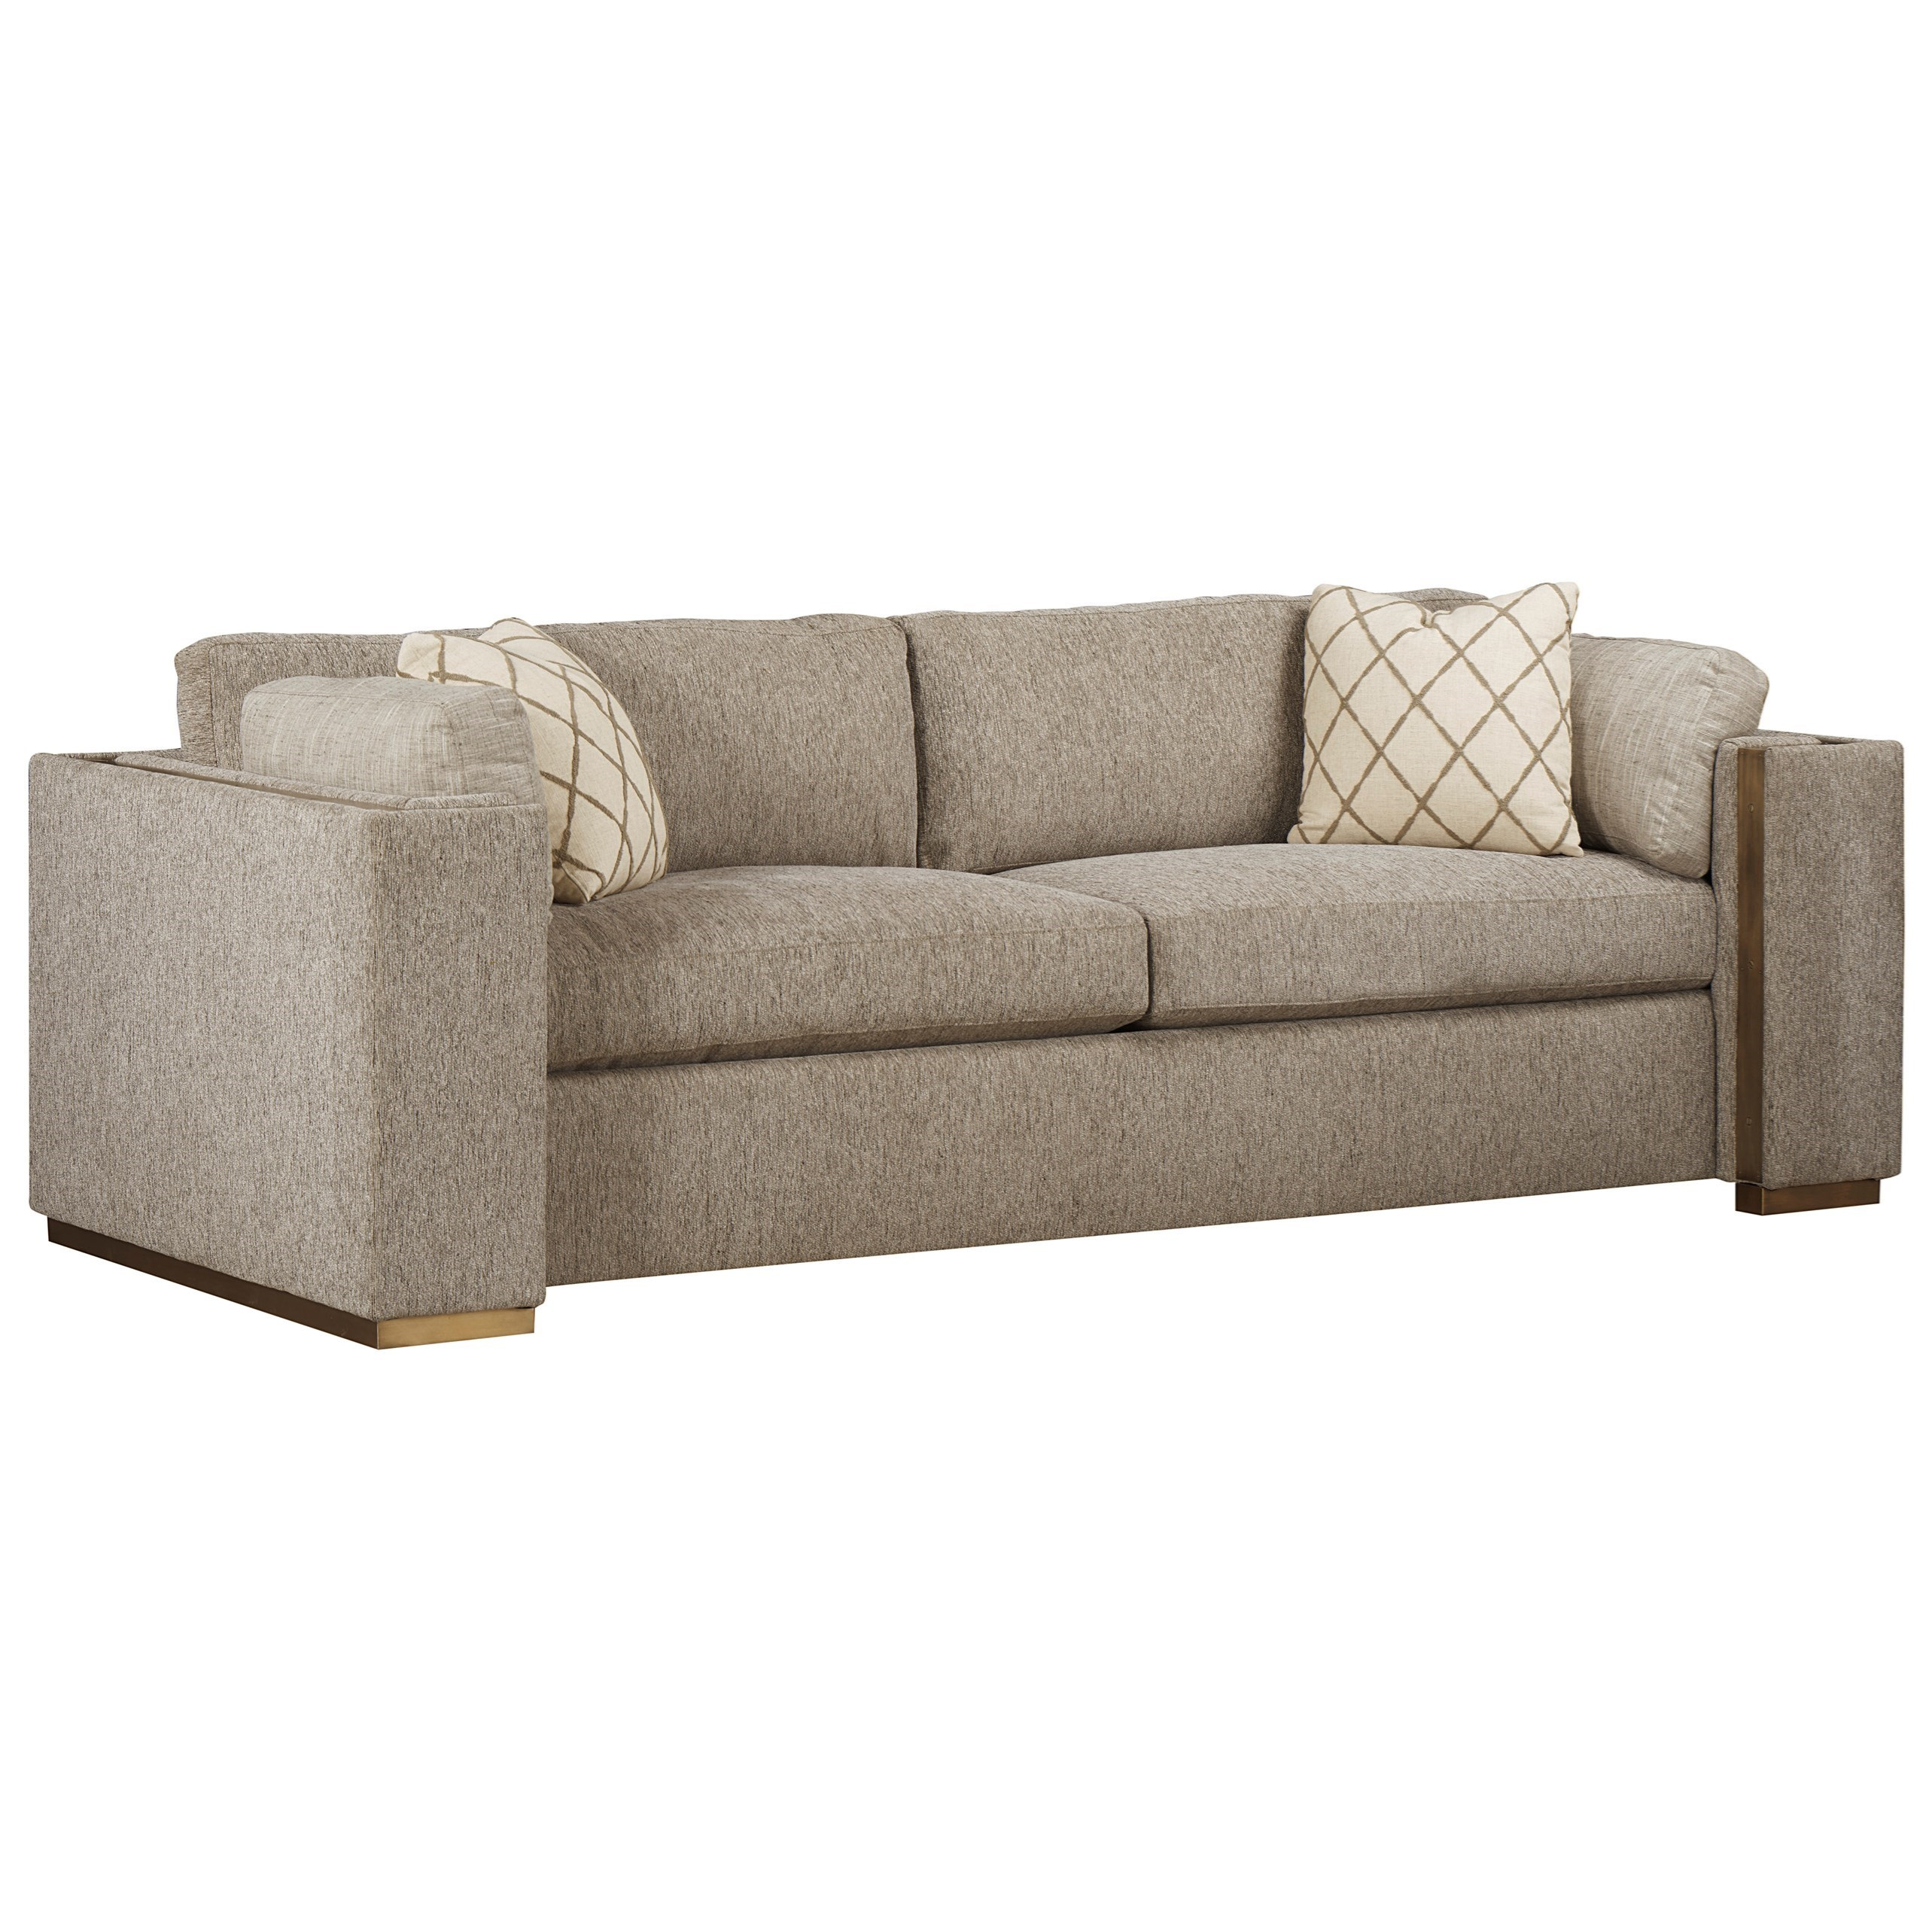 WoodWright Upholstery Sofa by A.R.T. Furniture Inc at Michael Alan Furniture & Design